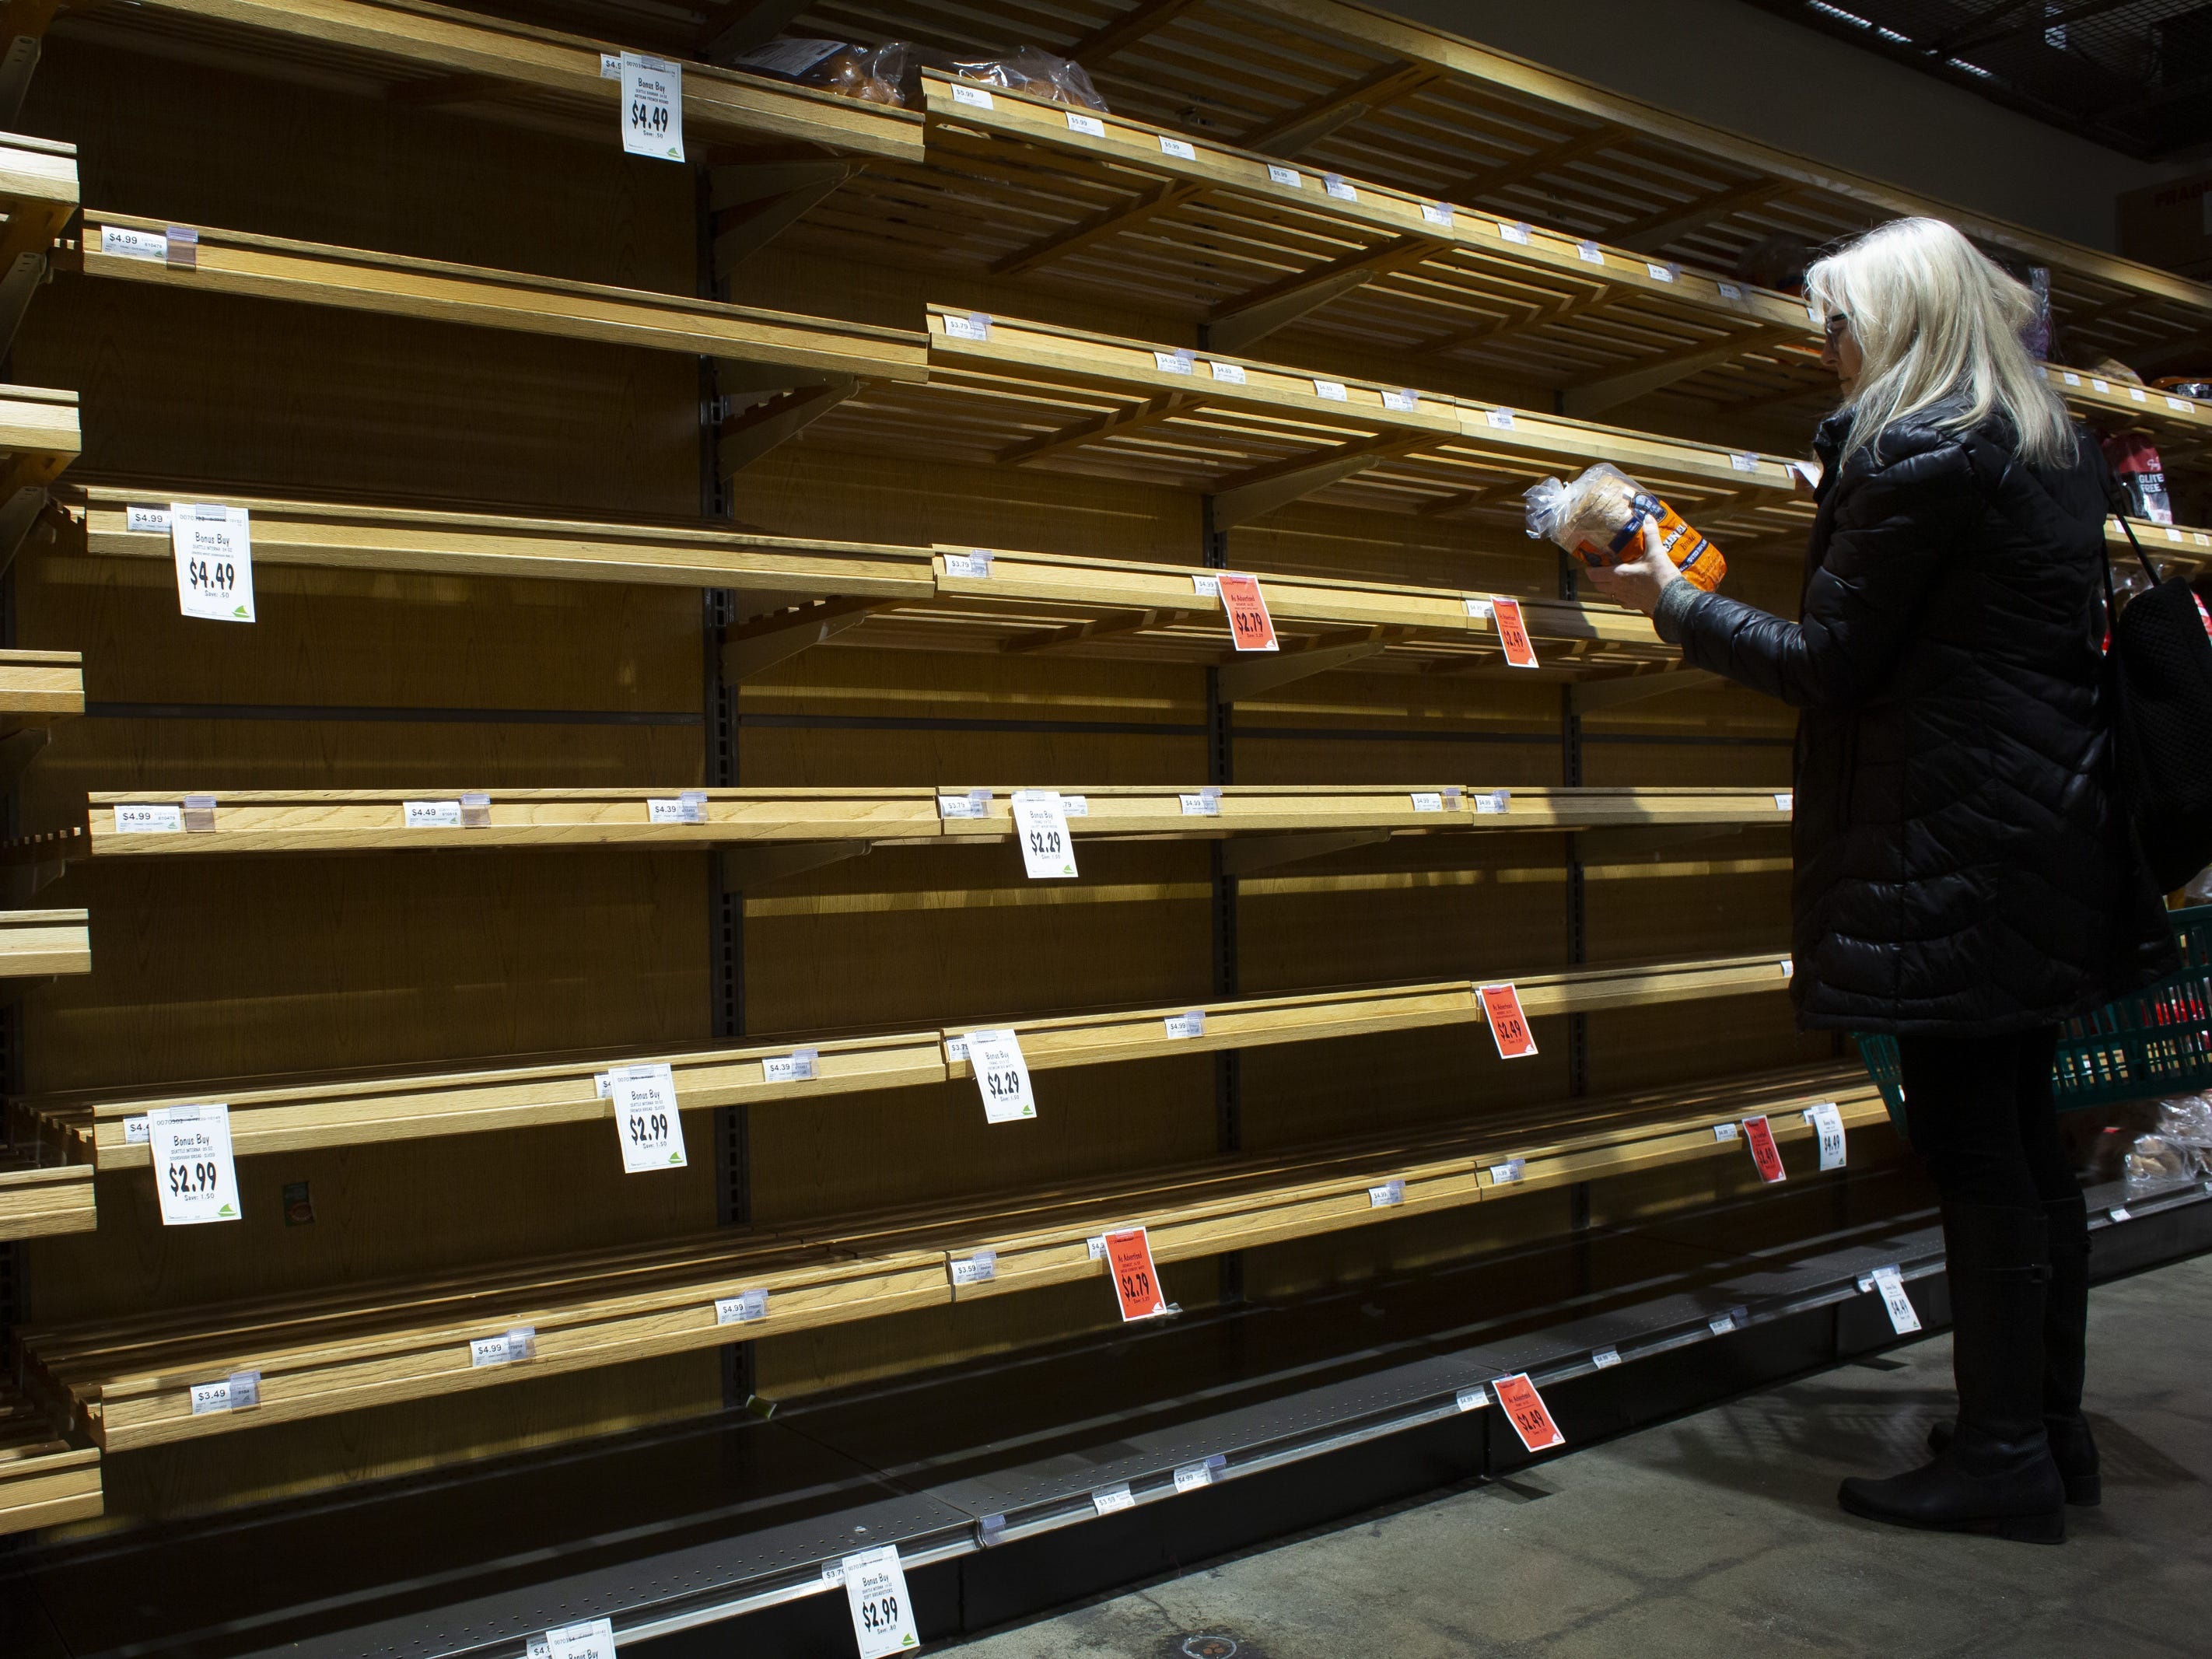 A woman shops for bread at a grocery store with very few options left on February 8, 2019 in Seattle, Washington.